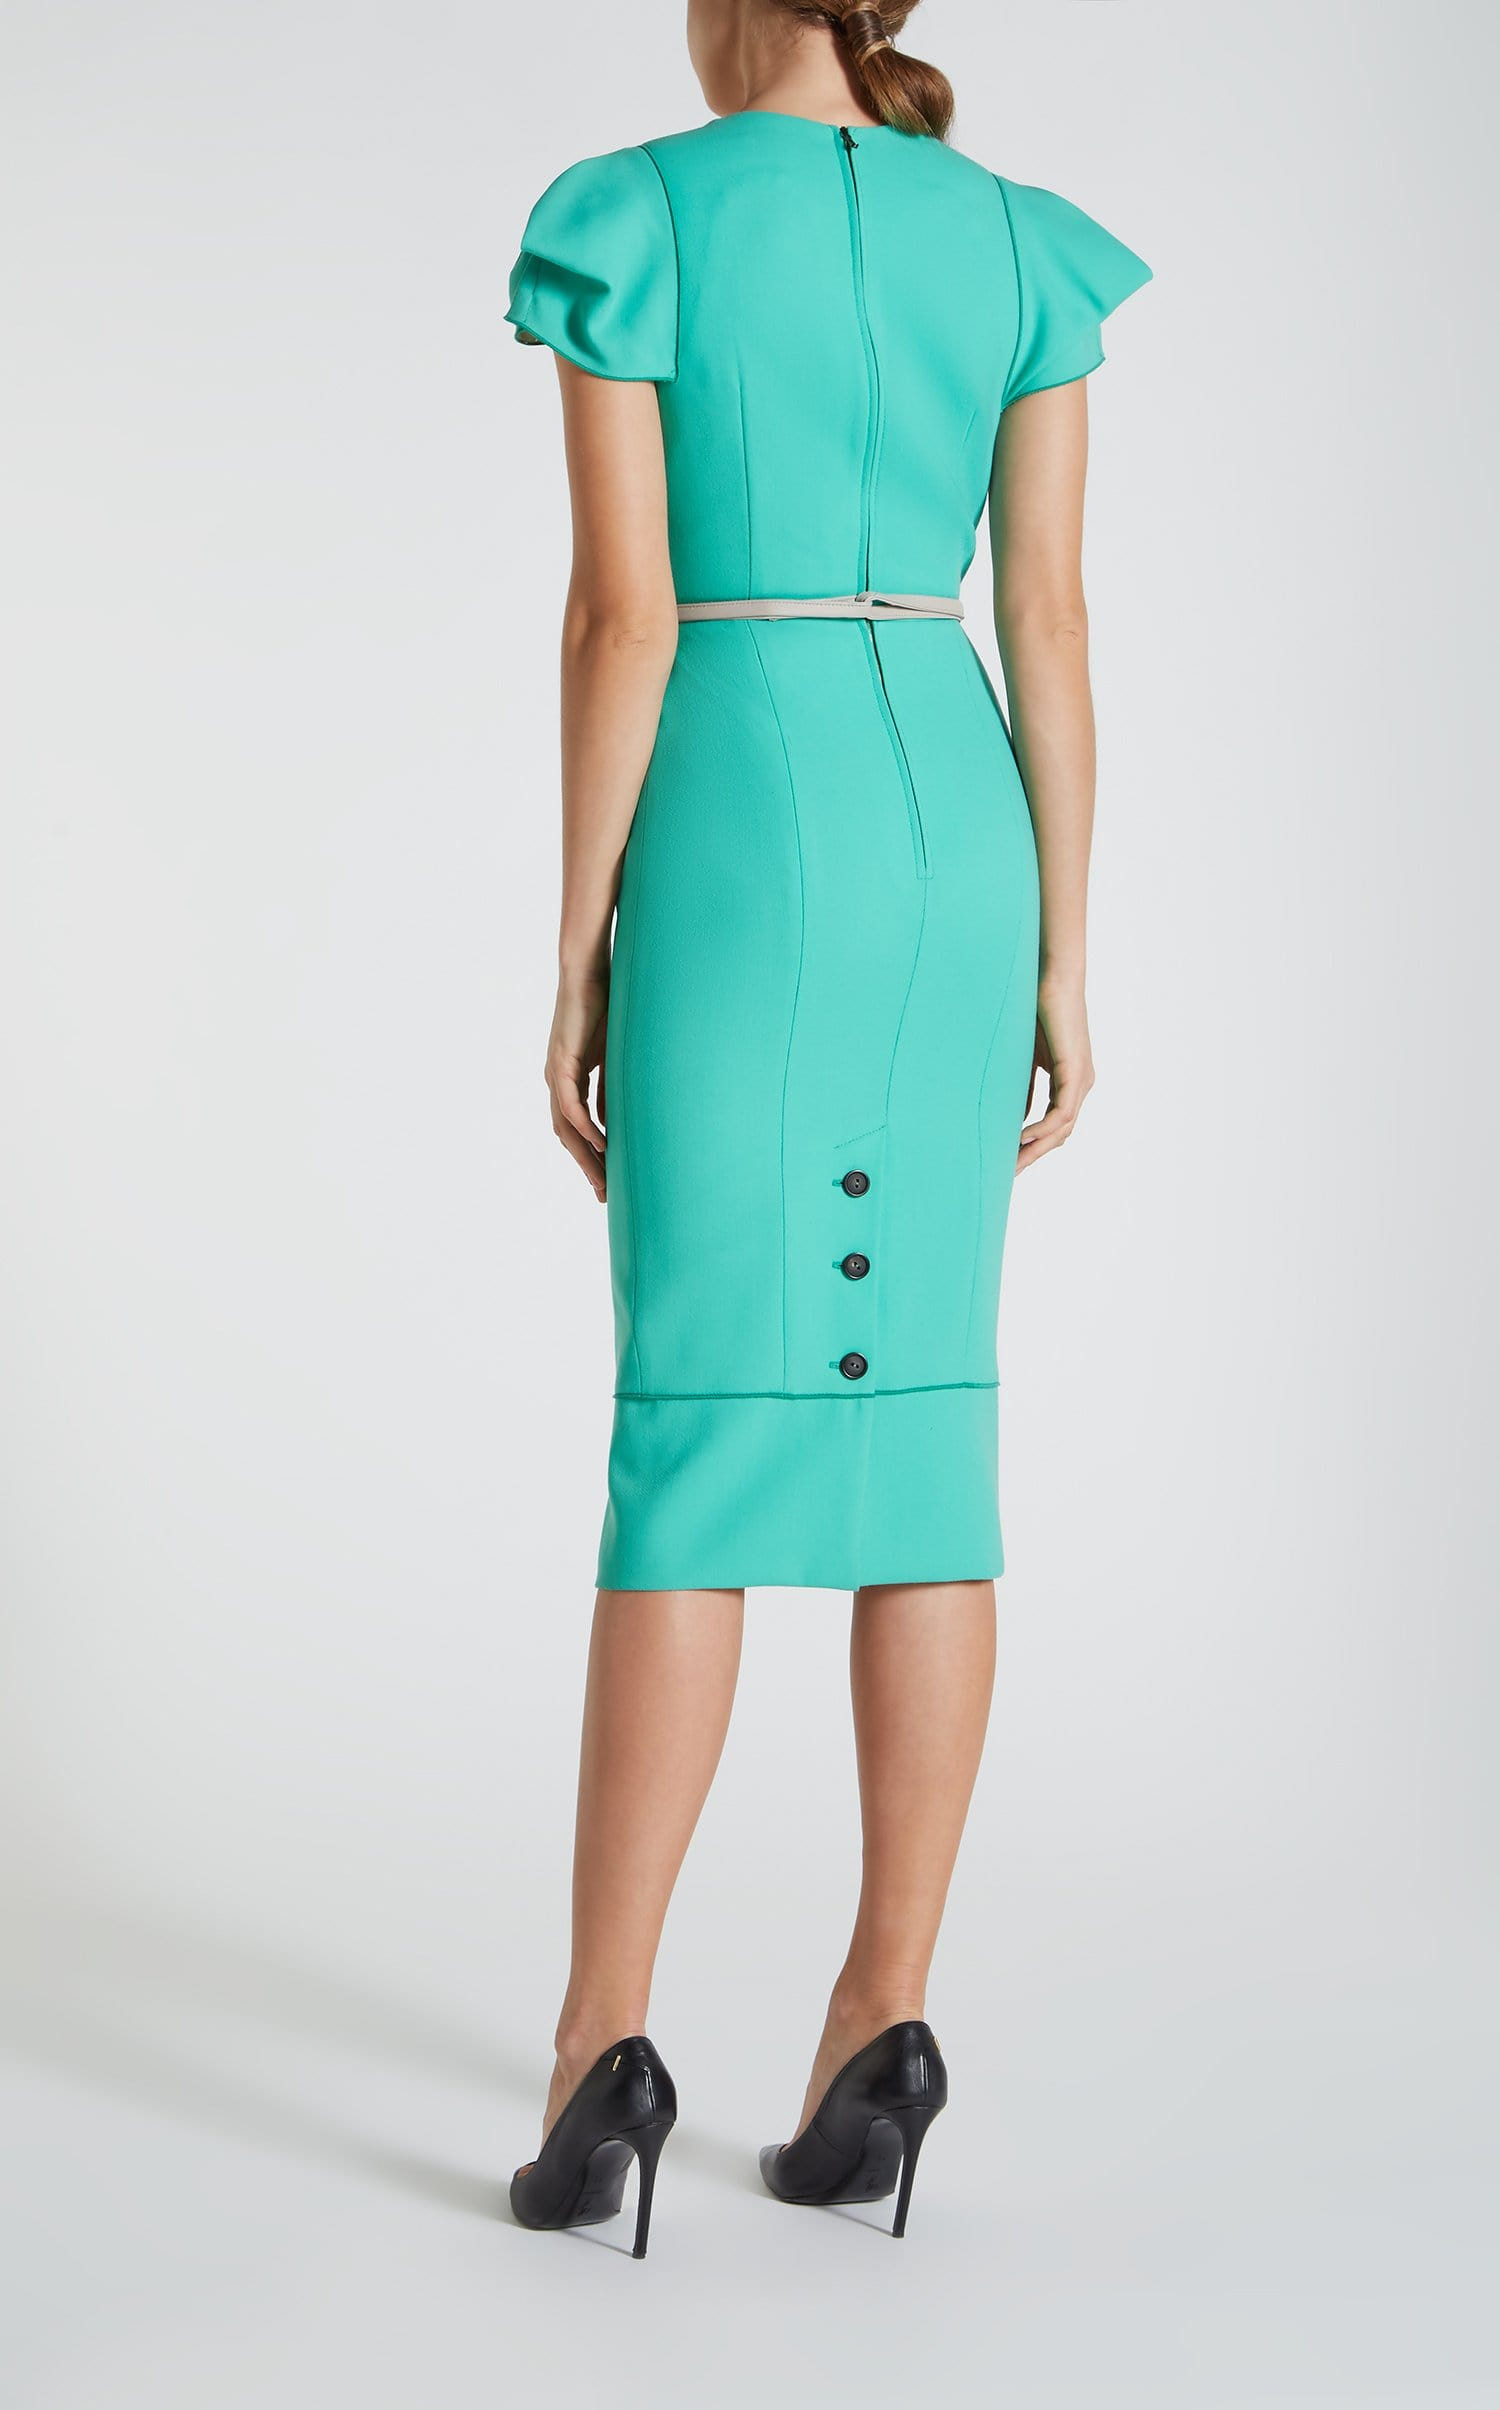 Galaxy Dress In Peppermint Green from Roland Mouret